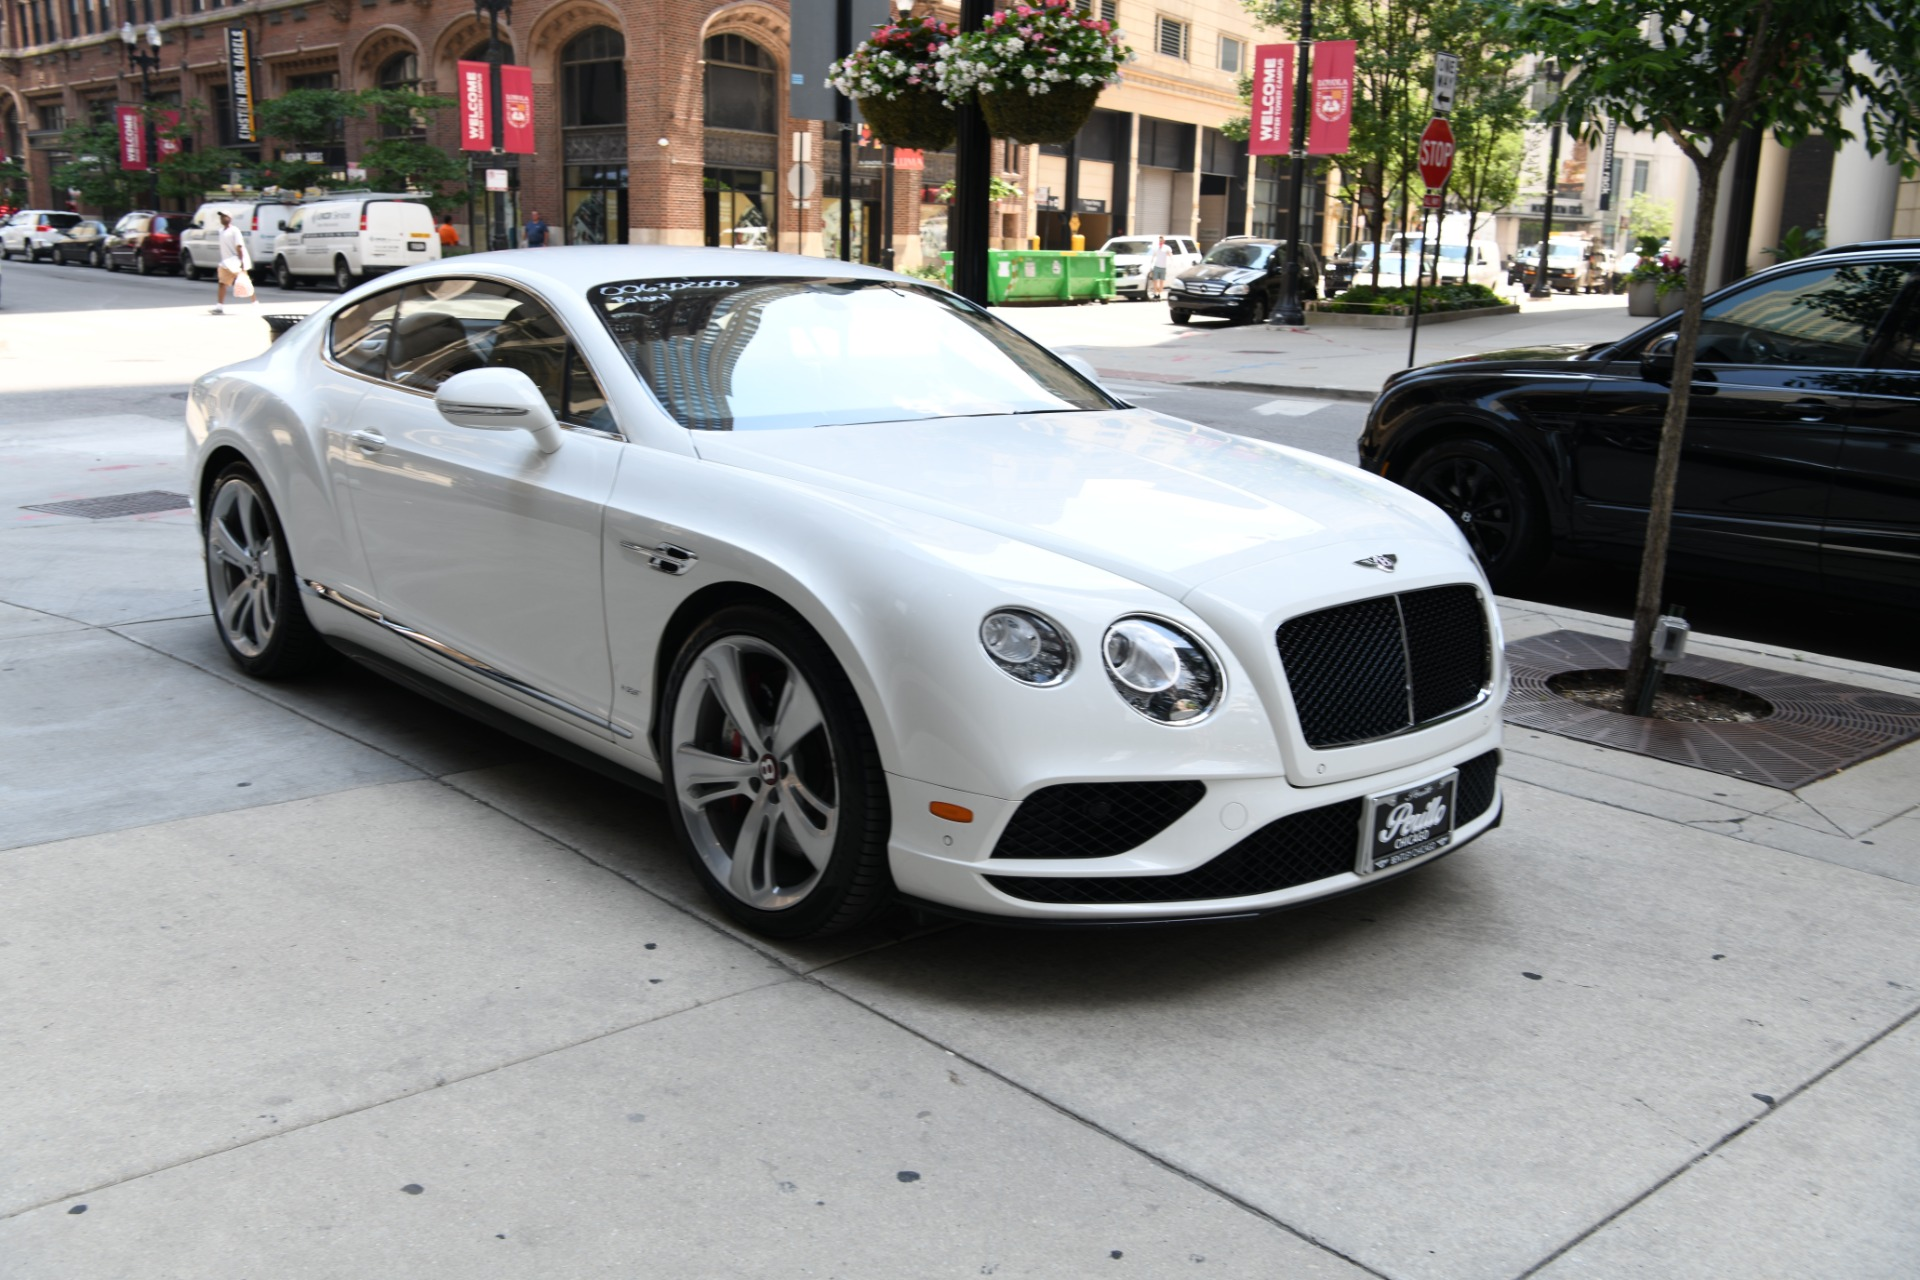 2016 Bentley Continental GT V8 S Stock B754 for sale near Chicago